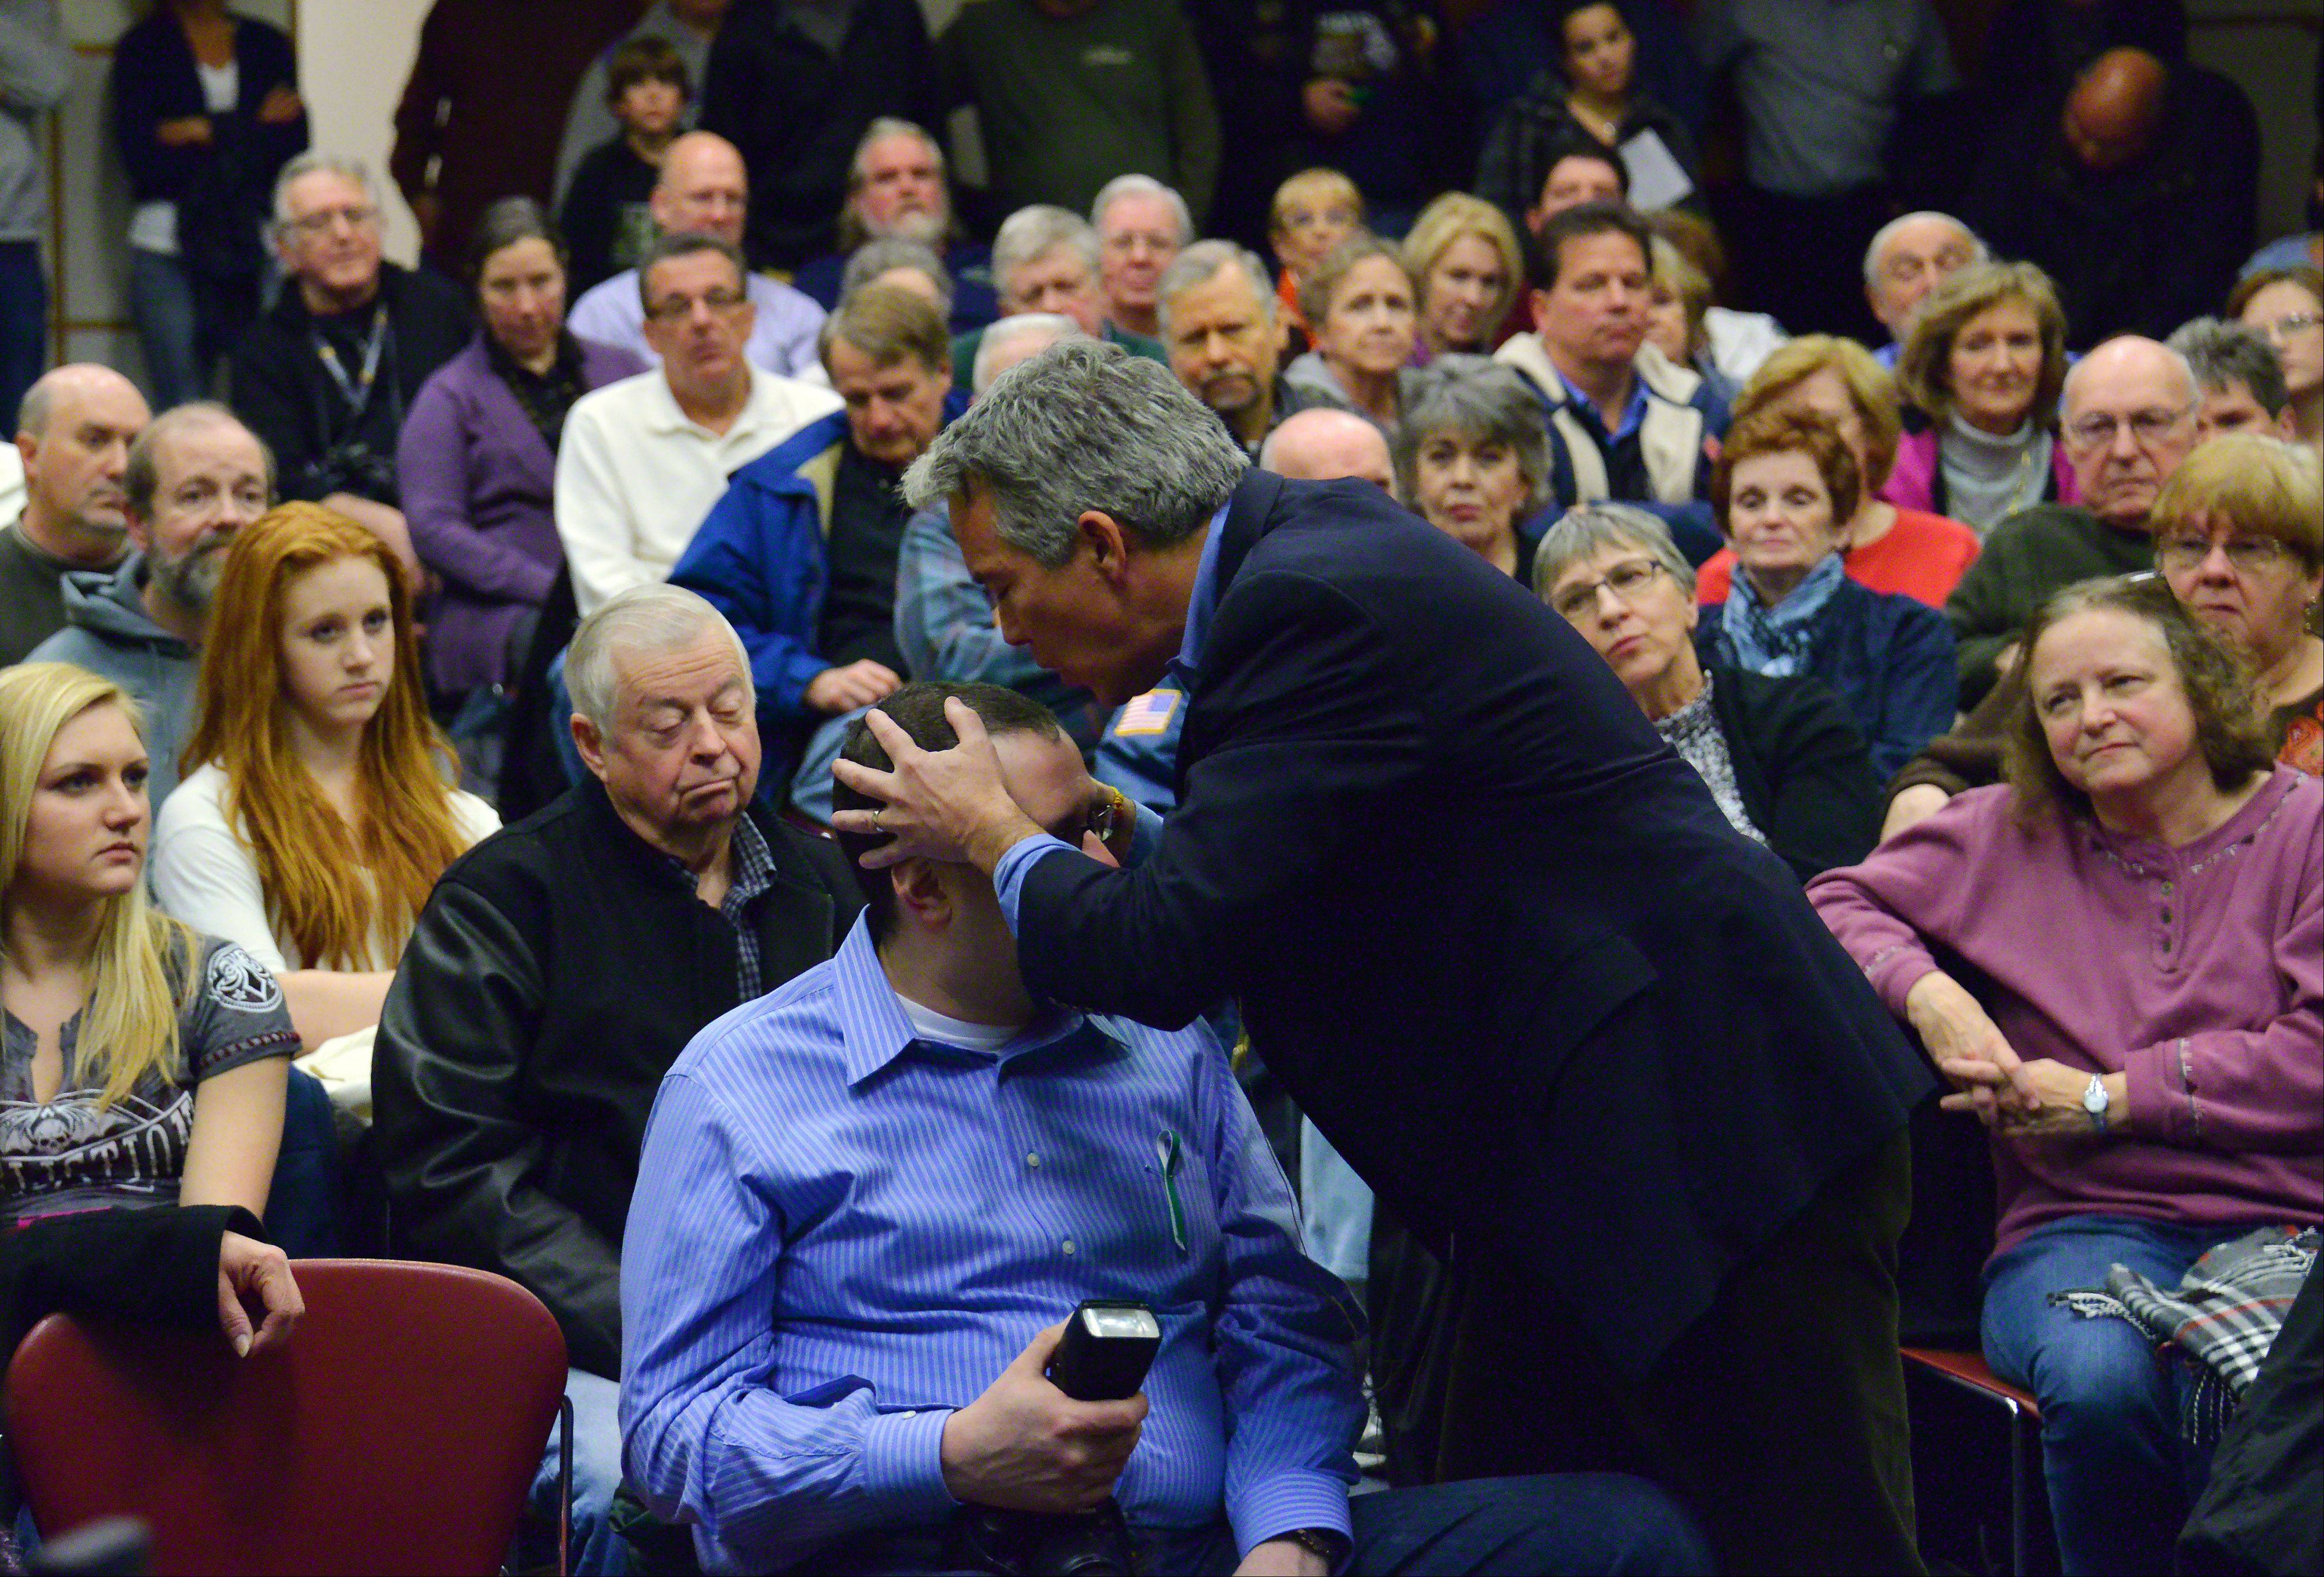 Former U.S. Rep. Joe Walsh made his first public appearance as an ex-congressman at the Arlington Heights Memorial Library on Thursday night and spoke to over 100 people. Walsh used one of those people, Carl Arriaza of Mount Prospect, to make a point as he talked about the country's future.